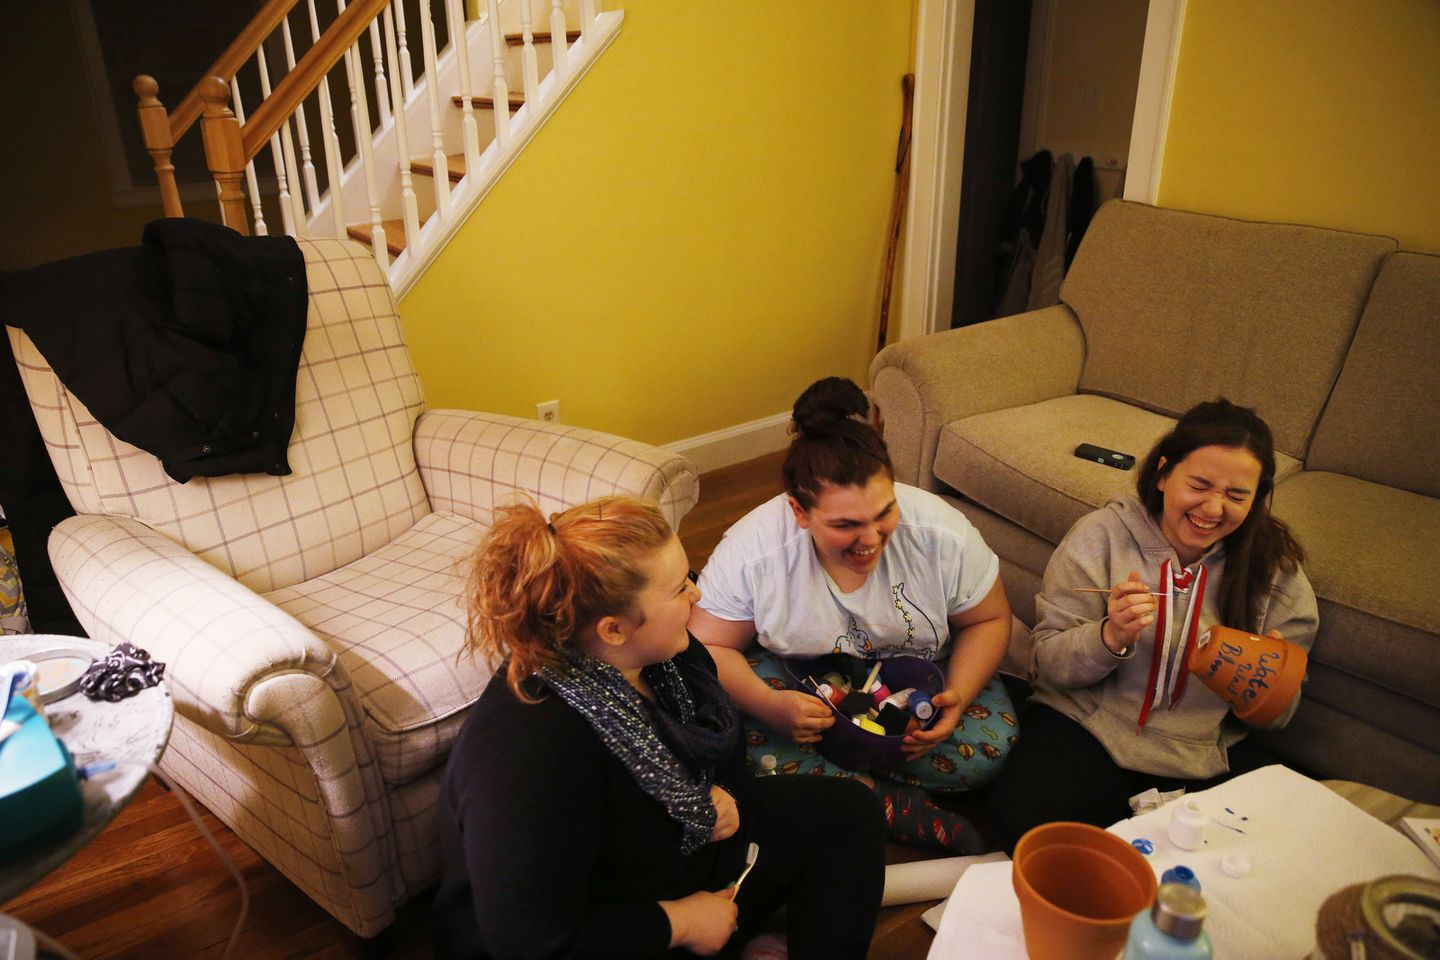 Rachael Carr, Chloe Currier, and Deb joked as they made gifts in Rachael's living room to give to the other teams in the semifinals at Hamilton-Wenham Regional High School.